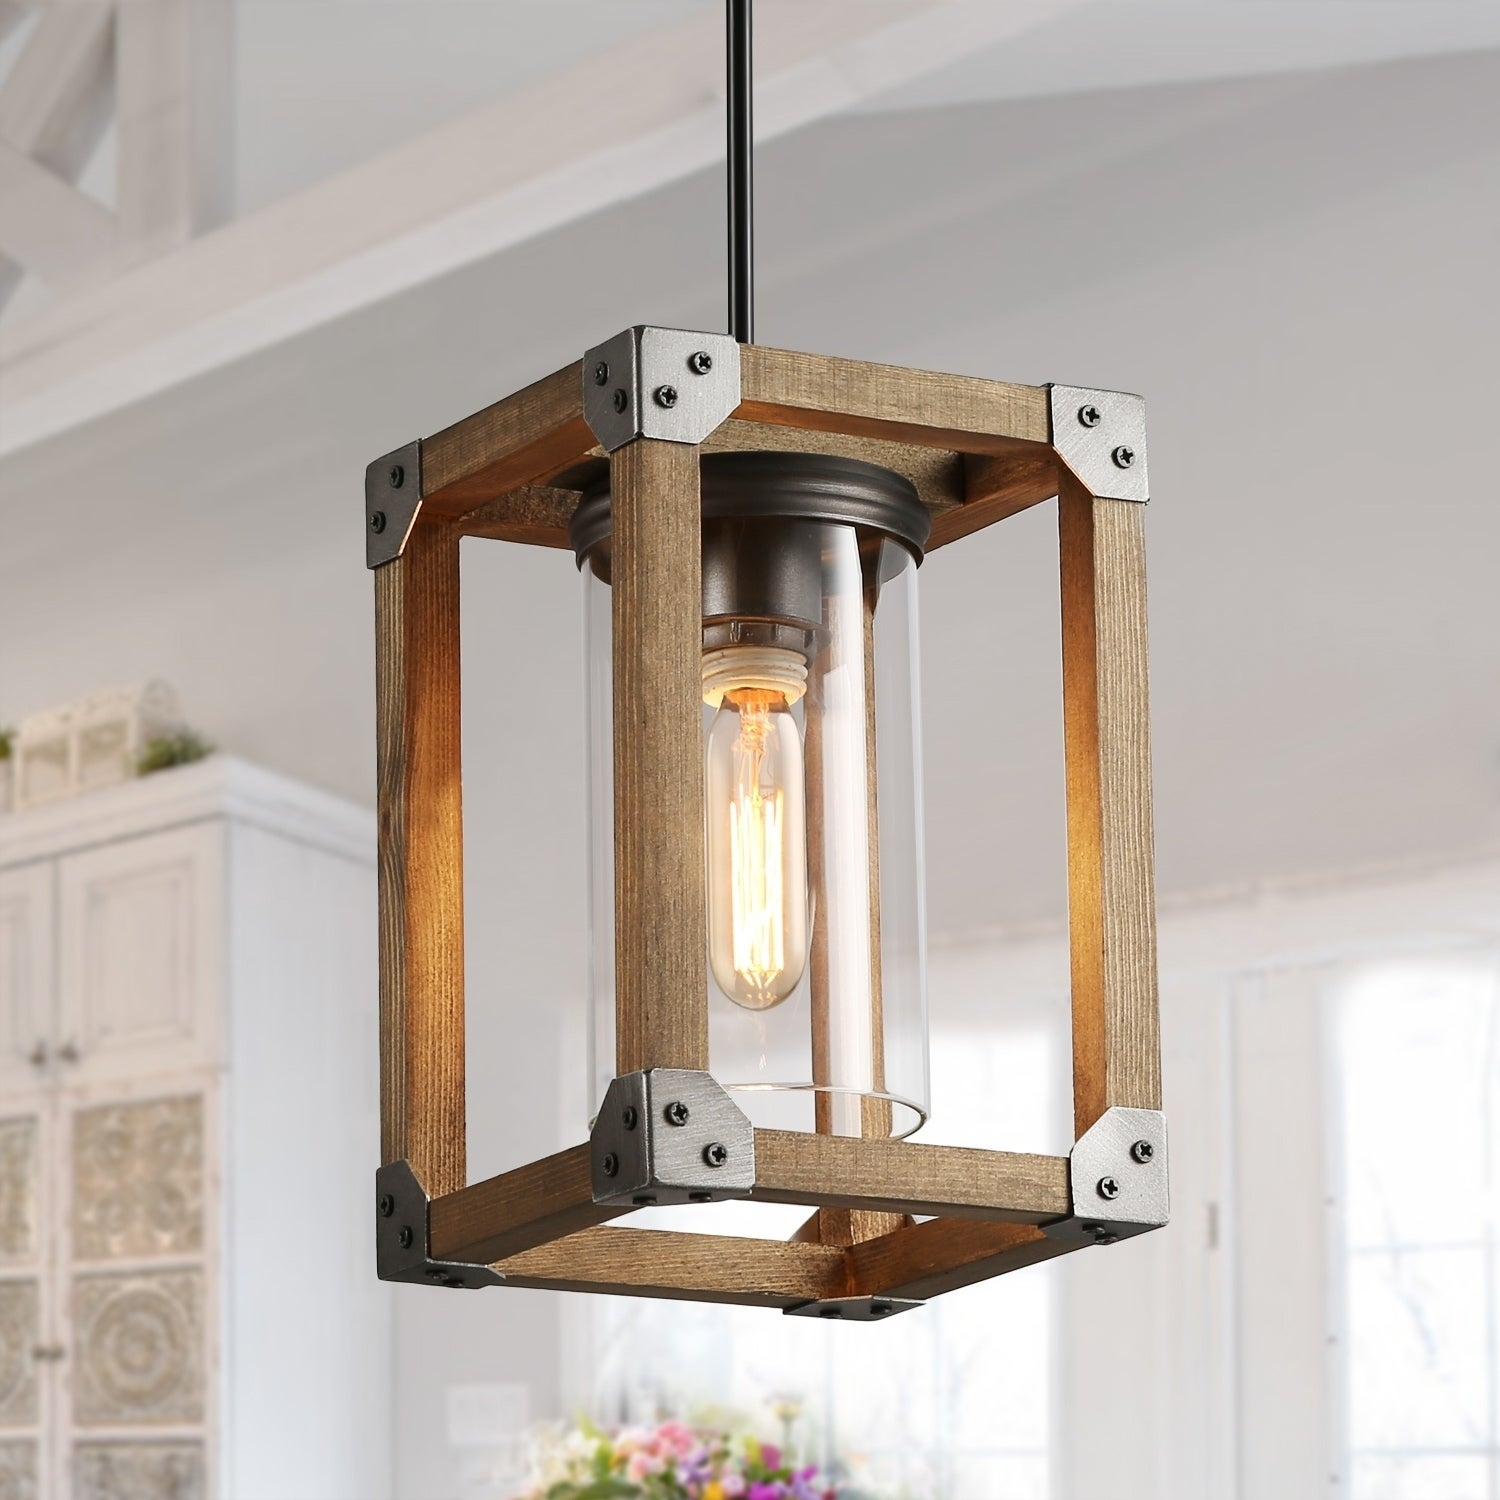 Farmhouse Antique Wood Pendant Lighting with Glass Cage Chandelier -  W5.1\